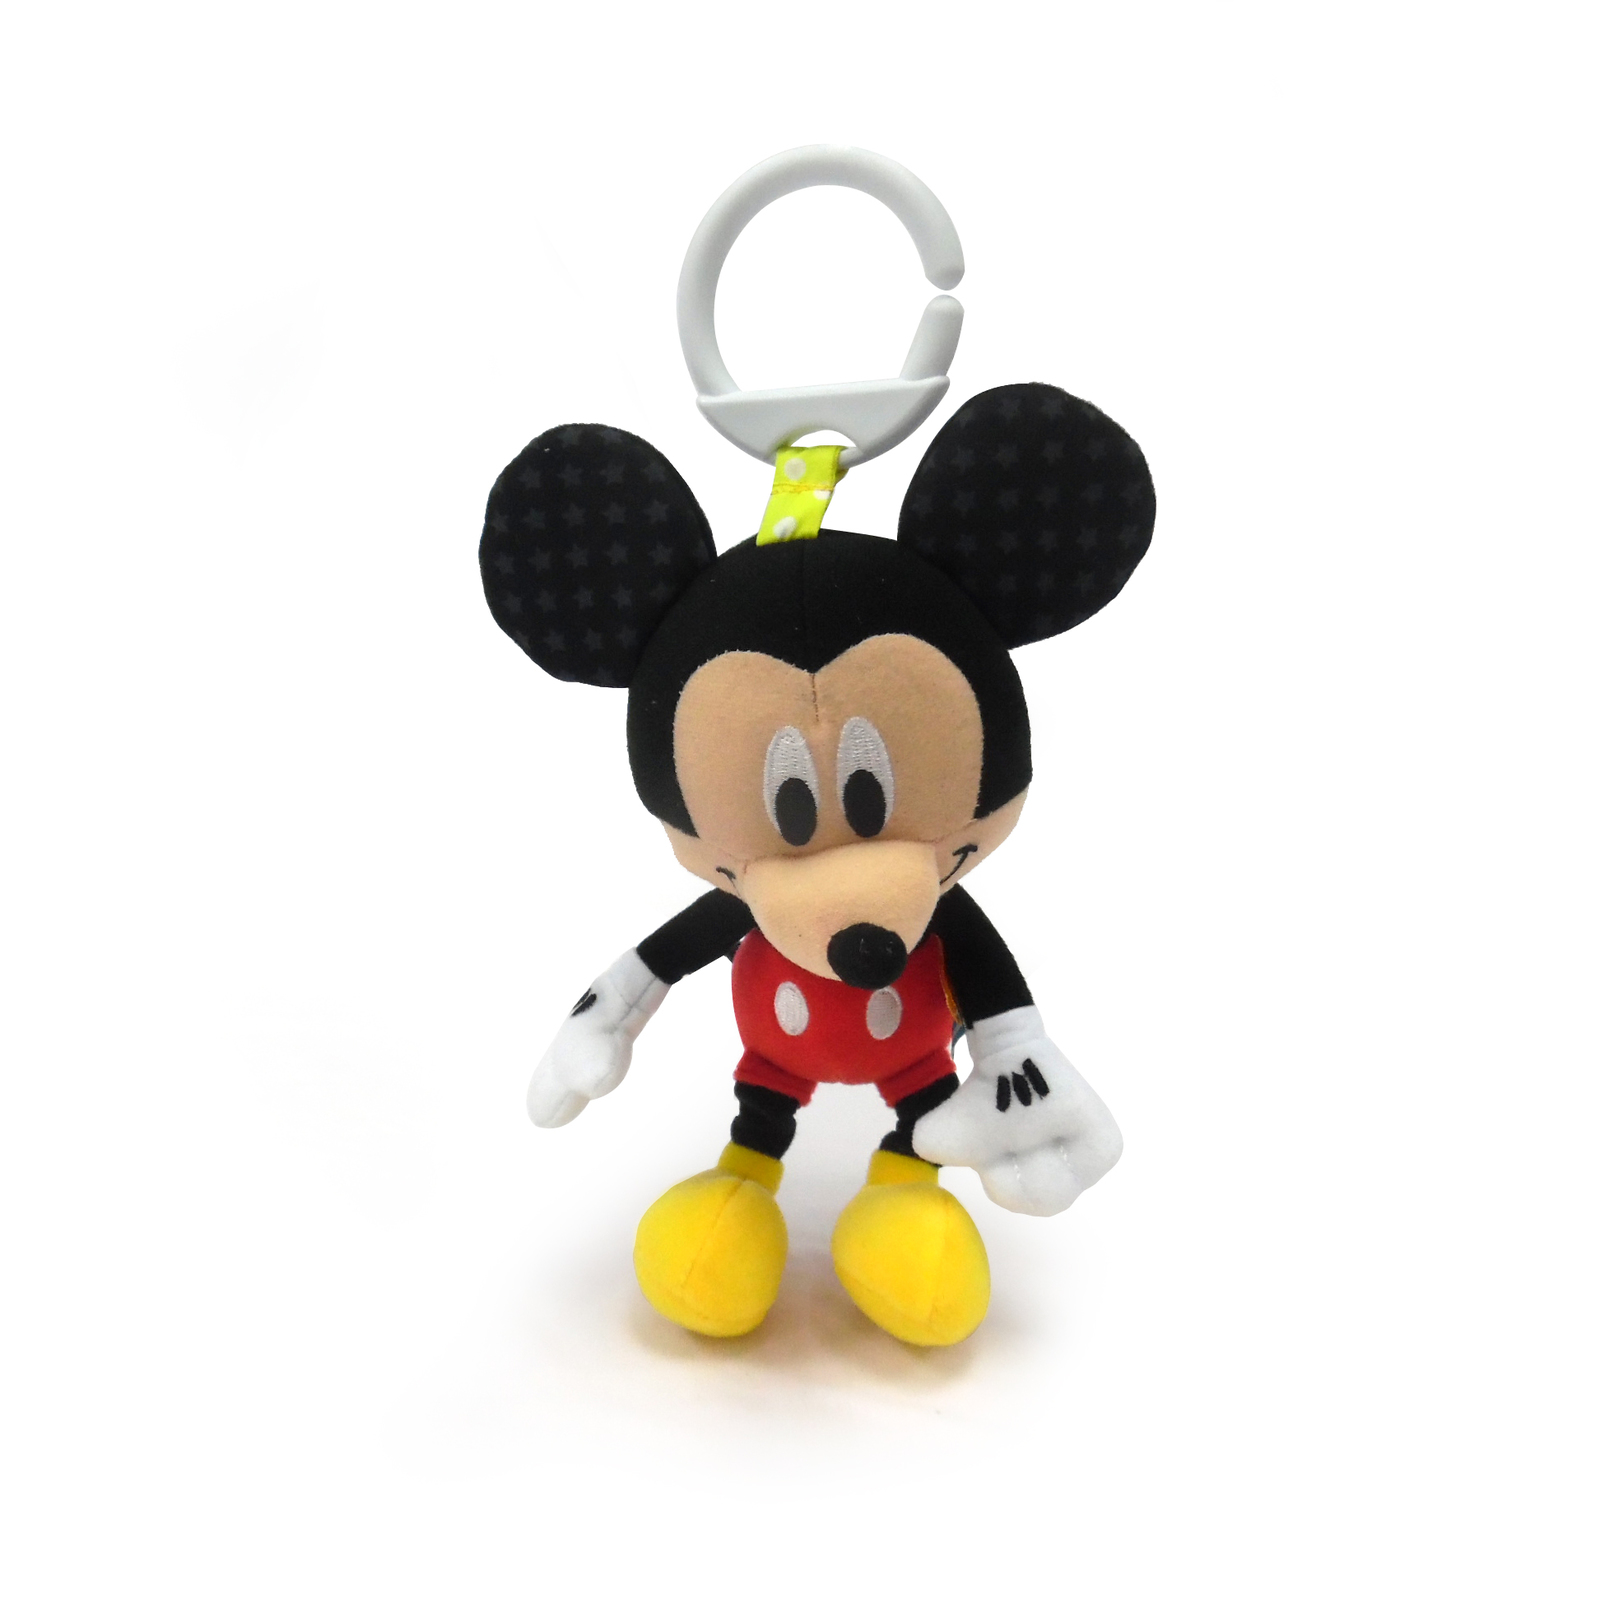 Mickey Mouse Plush Pram Toy image